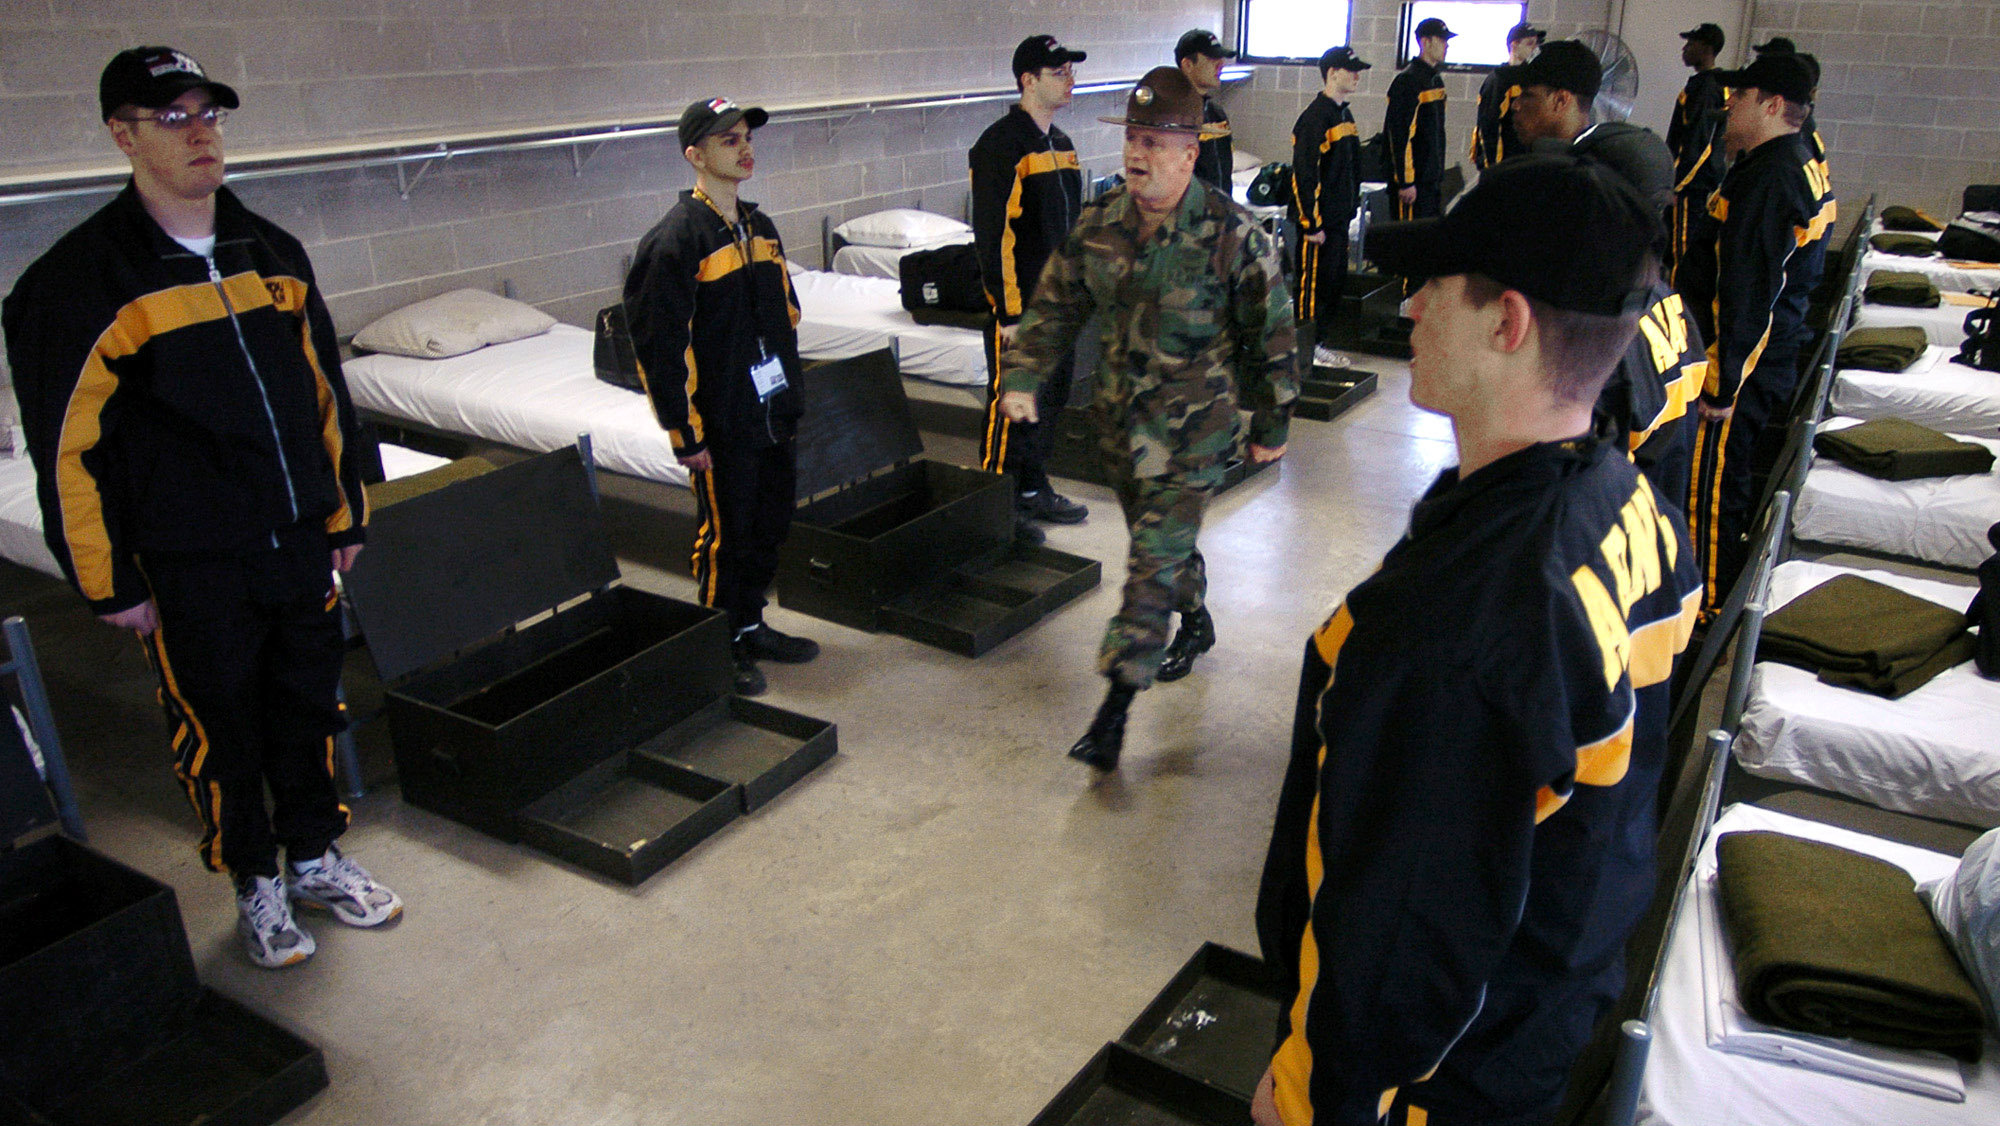 Sgt. James Locke, center, inspects recruits as they stand at attention in the concrete barracks Saturday, April 3, 2004, at the Army National Guard complex in Marseilles, Ill.